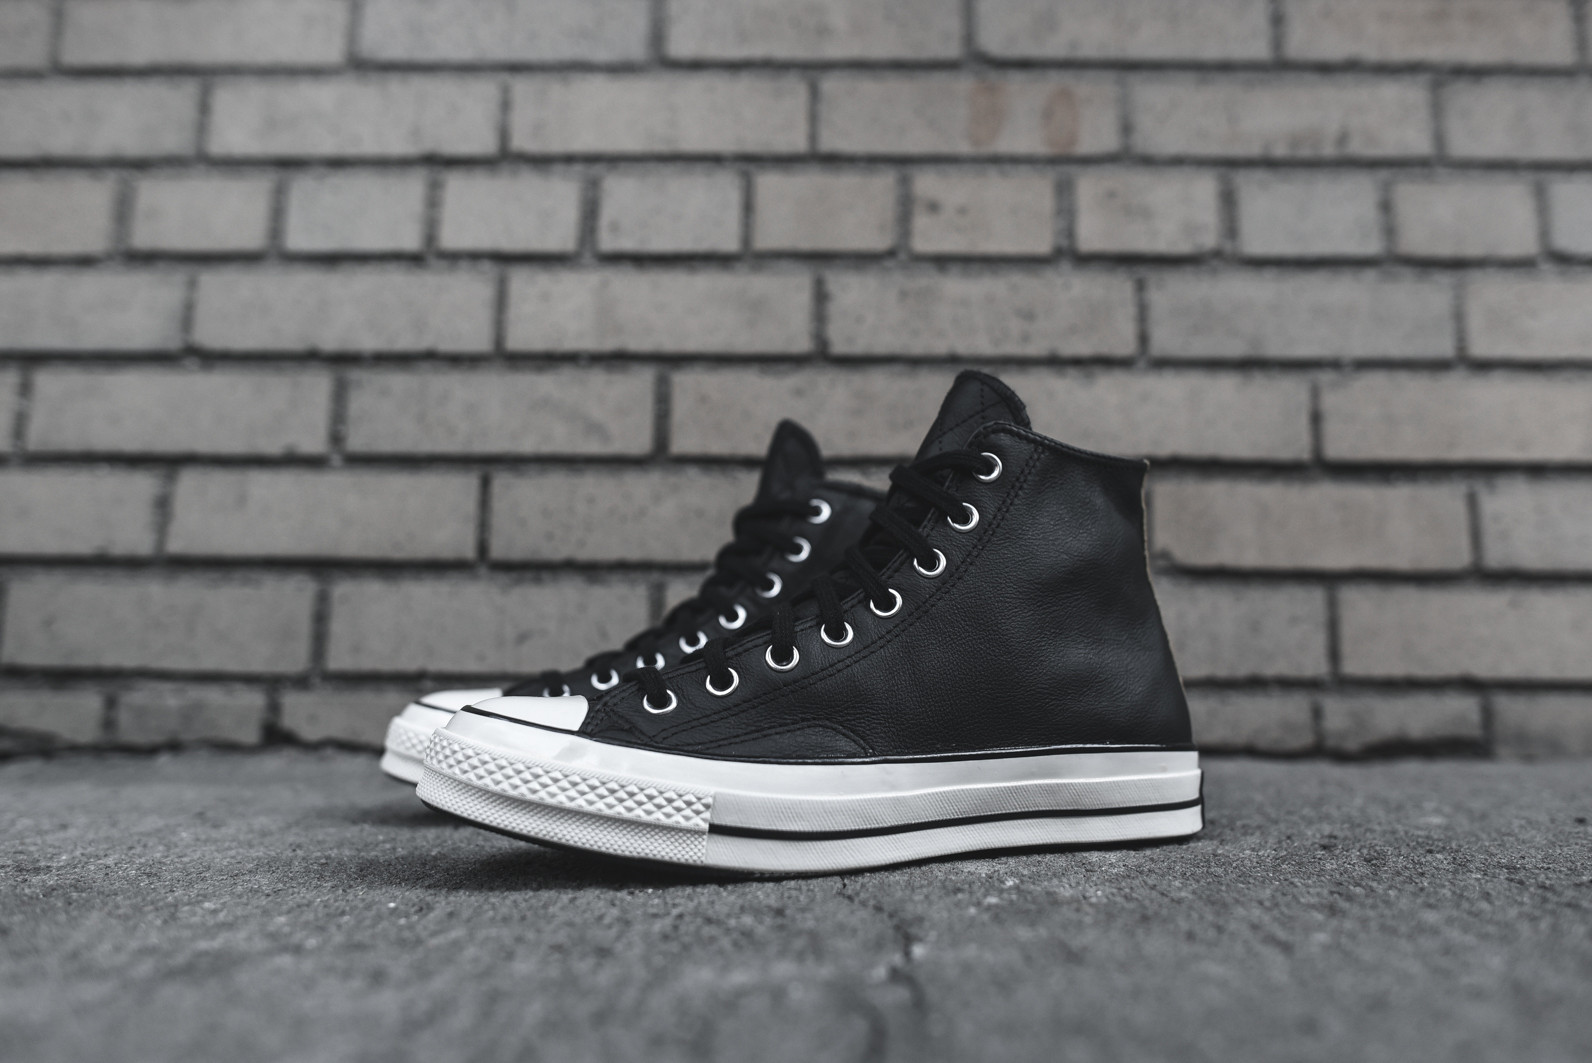 Converse Converse Shoes The Best Prices Online In